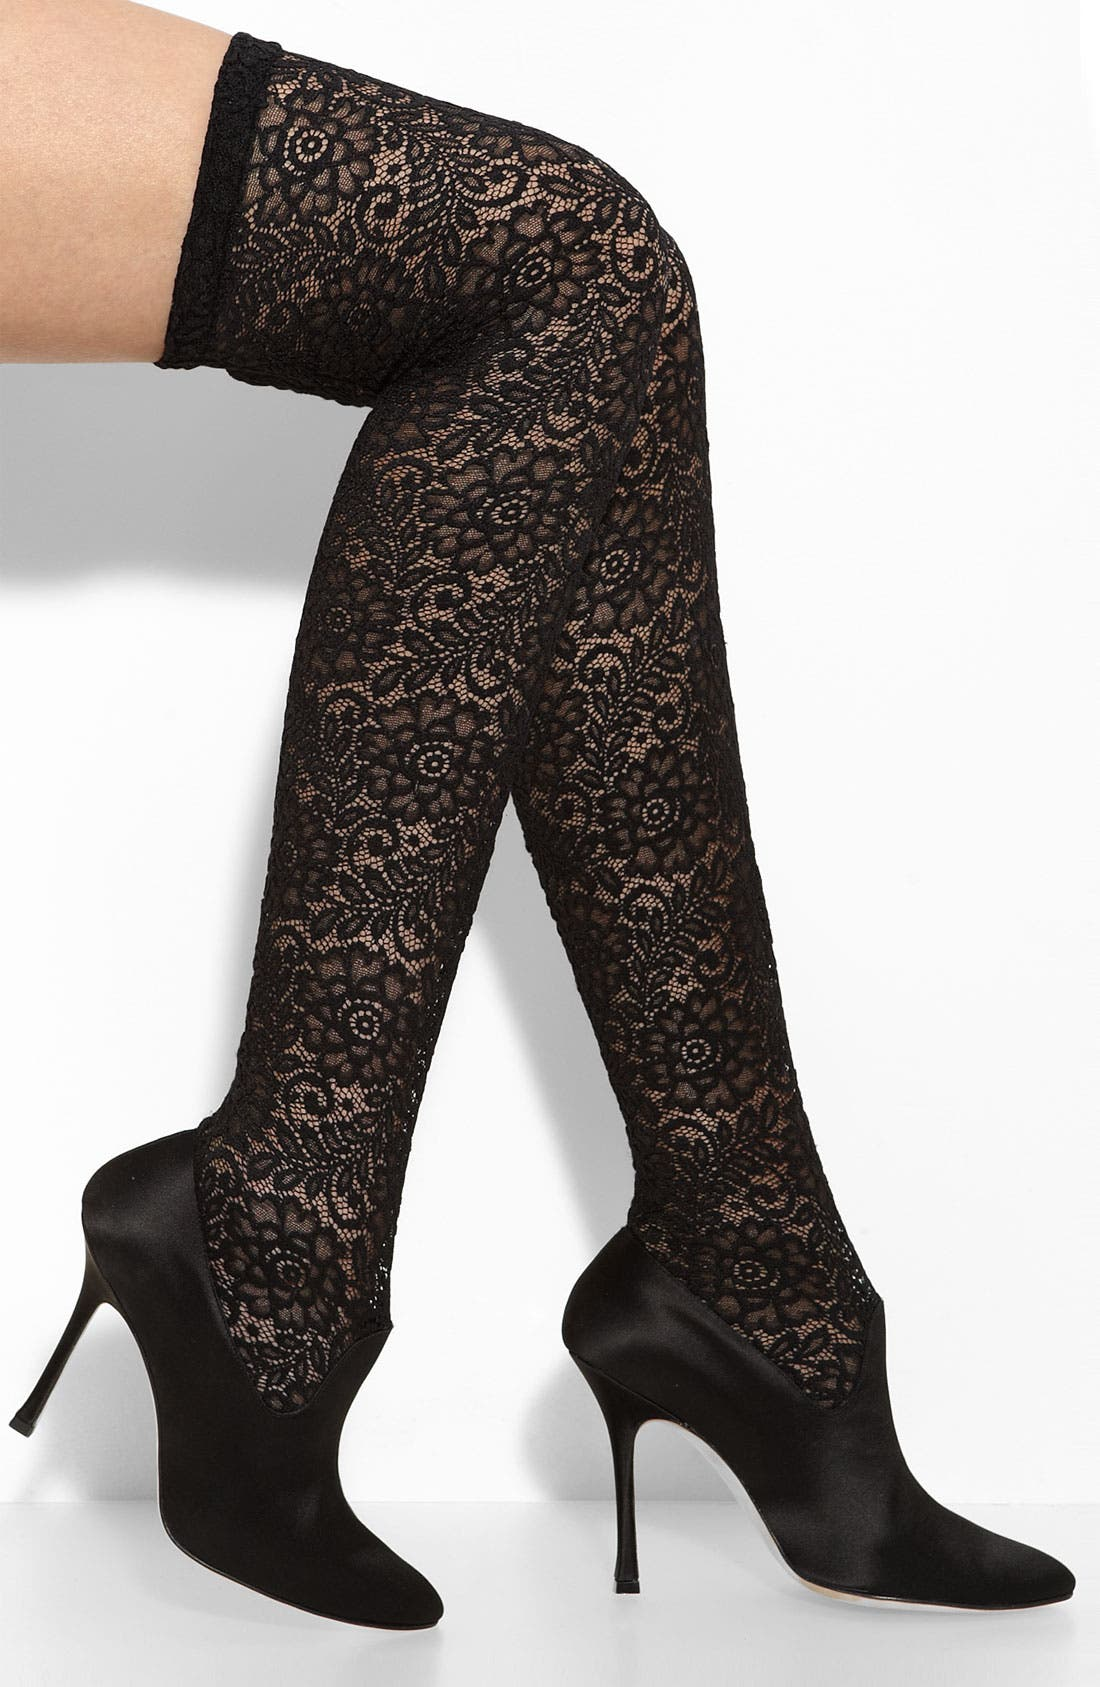 Main Image - Manolo Blahnik 'Pascalare' Over the Knee Stretch Lace Boot